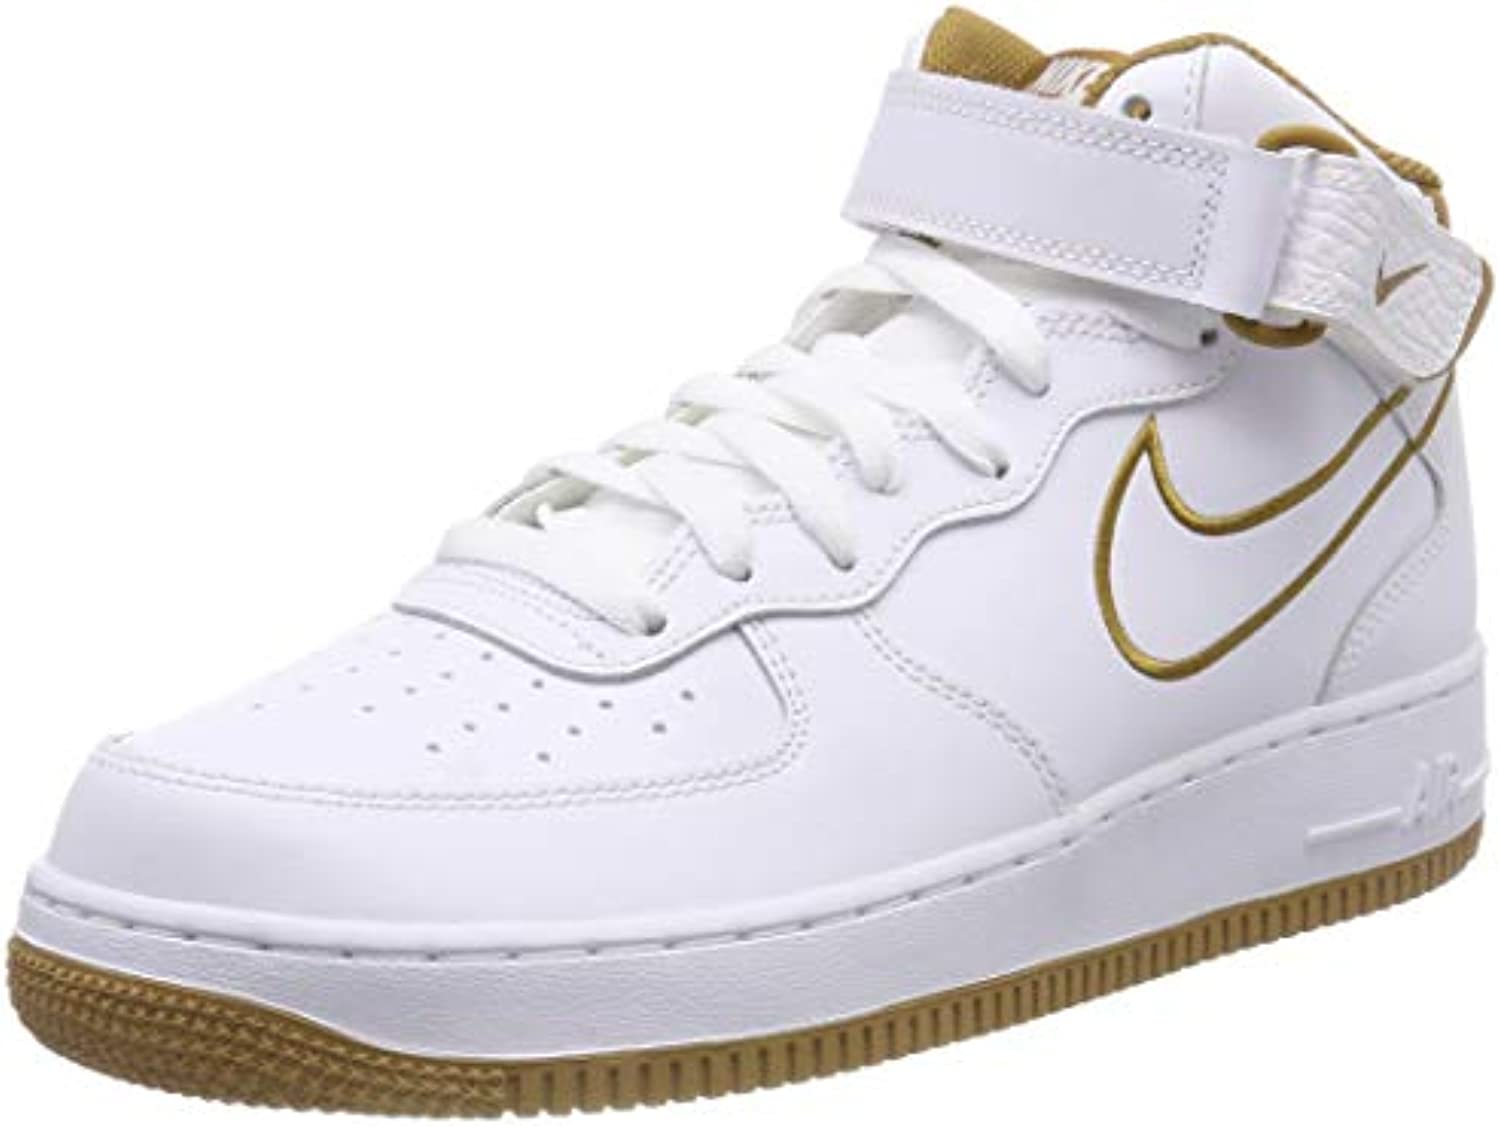 nike hommes & eacute; s air force 1 mi mi mi - 2007 lthr faible haut baskets b08639